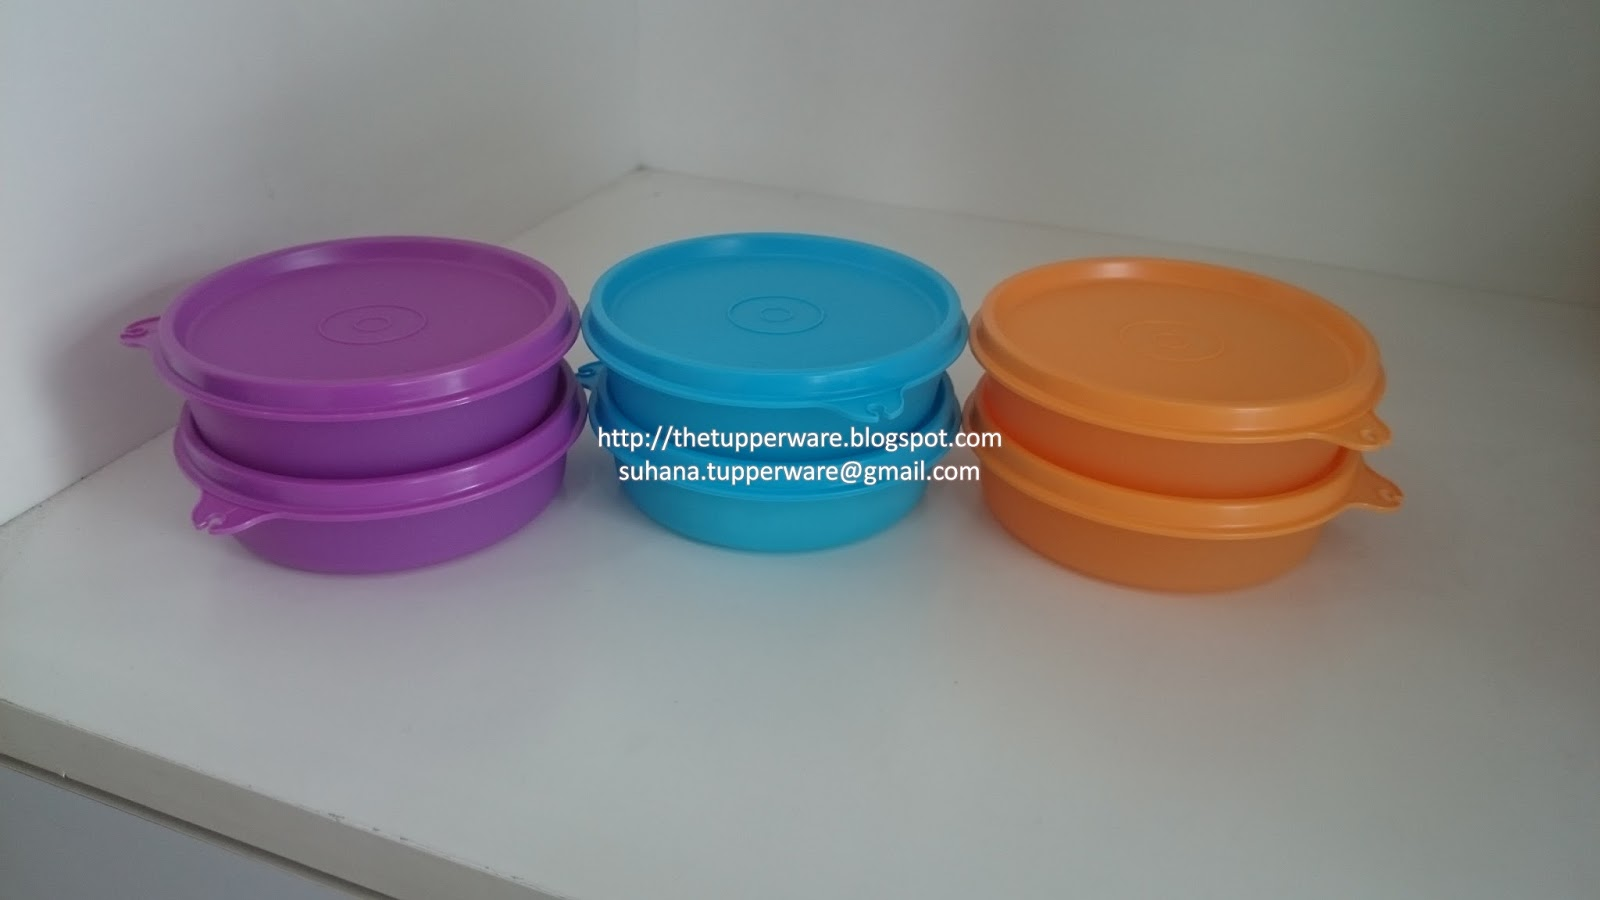 tupperware brands malaysia online catalogue collection business opportunity stock. Black Bedroom Furniture Sets. Home Design Ideas